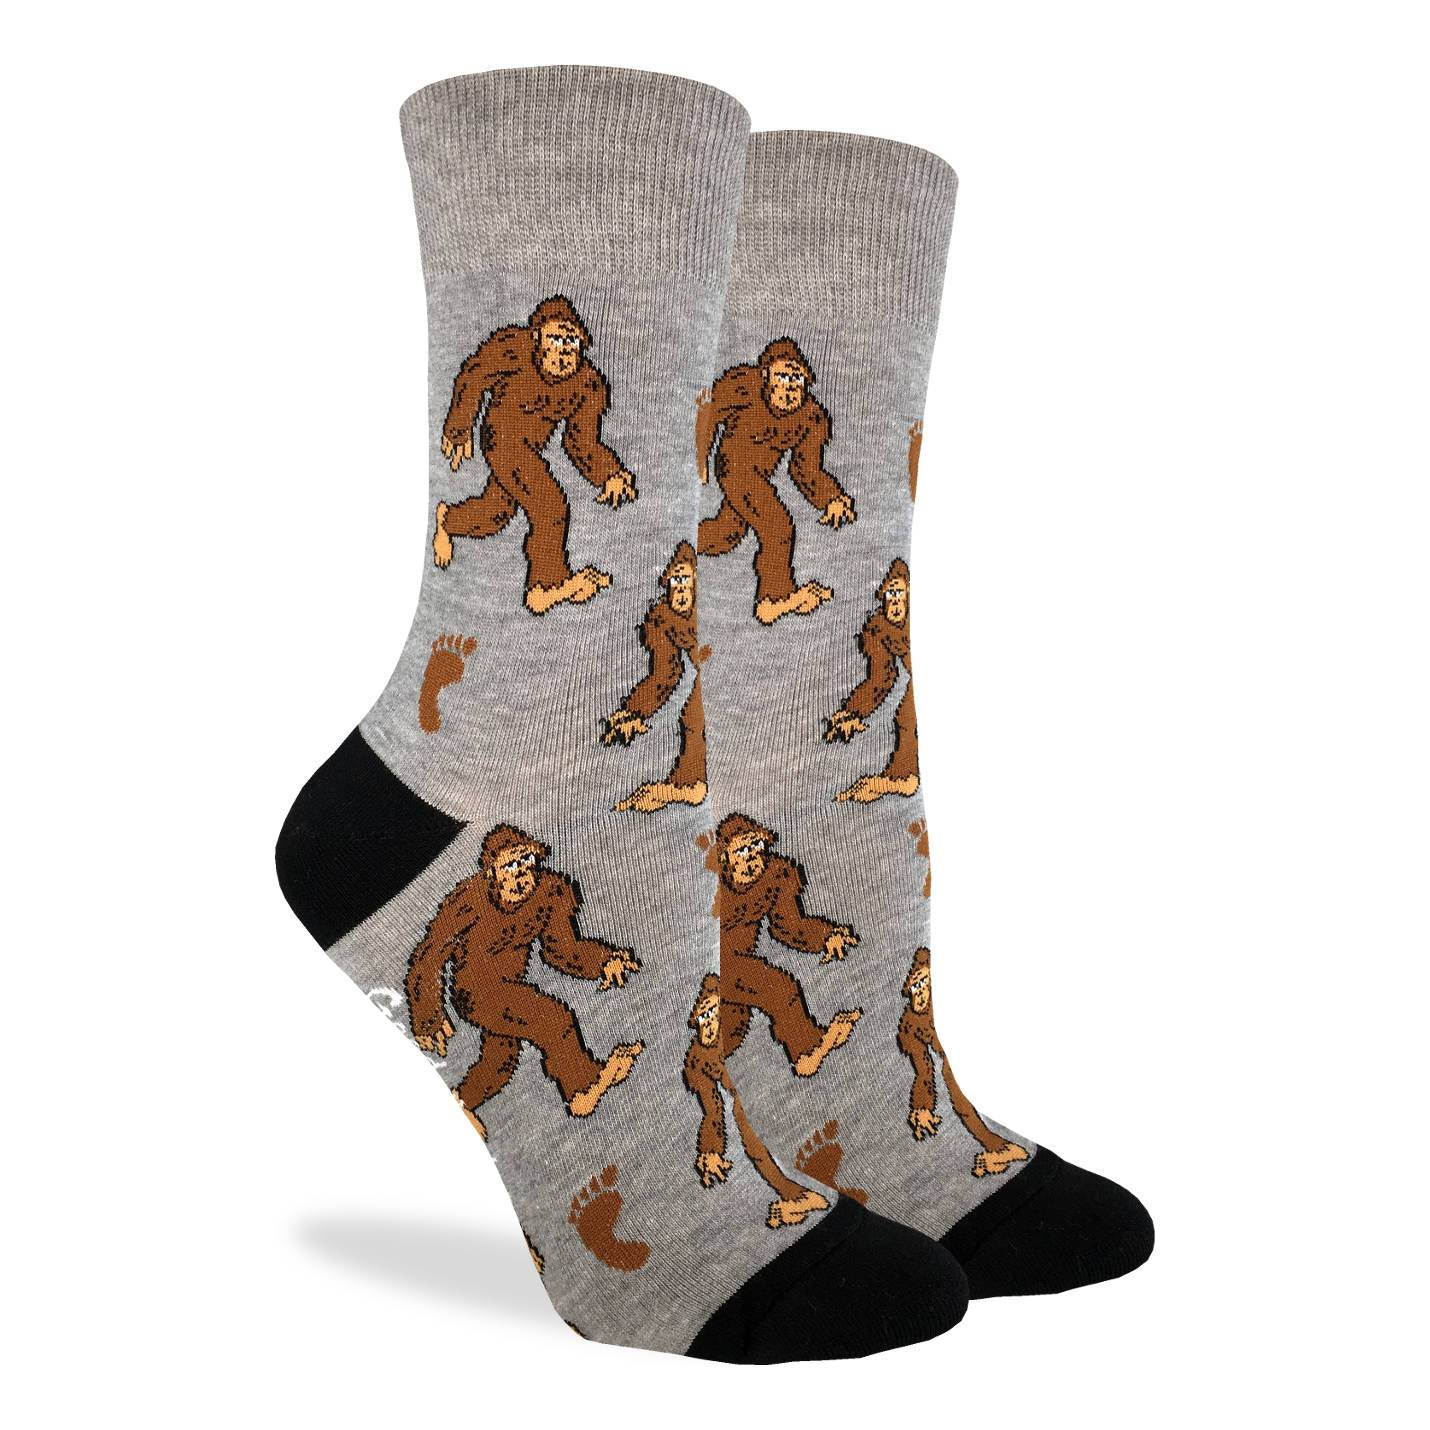 Women's Bigfoot Socks - Good Luck Sock